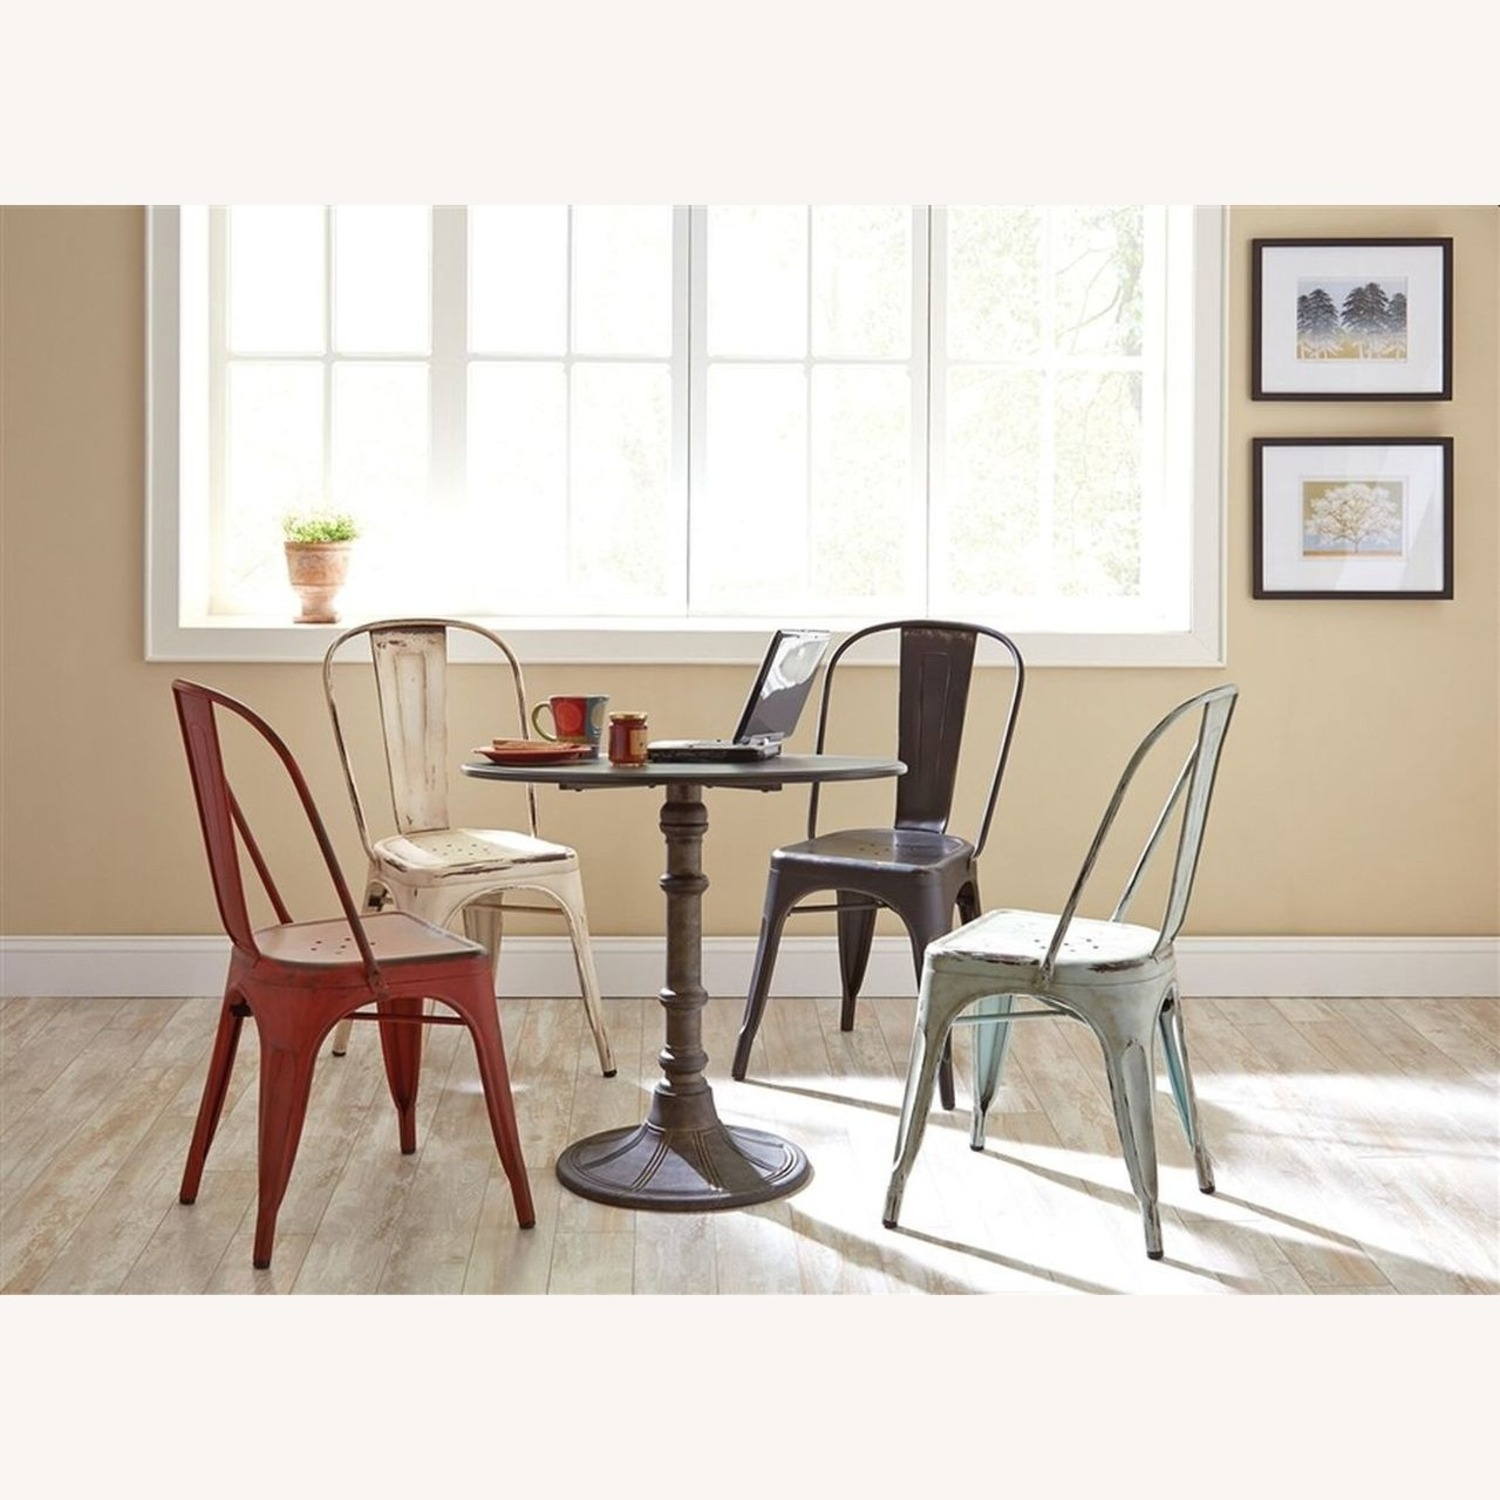 Charming Dining Chair In Black Metal - image-3